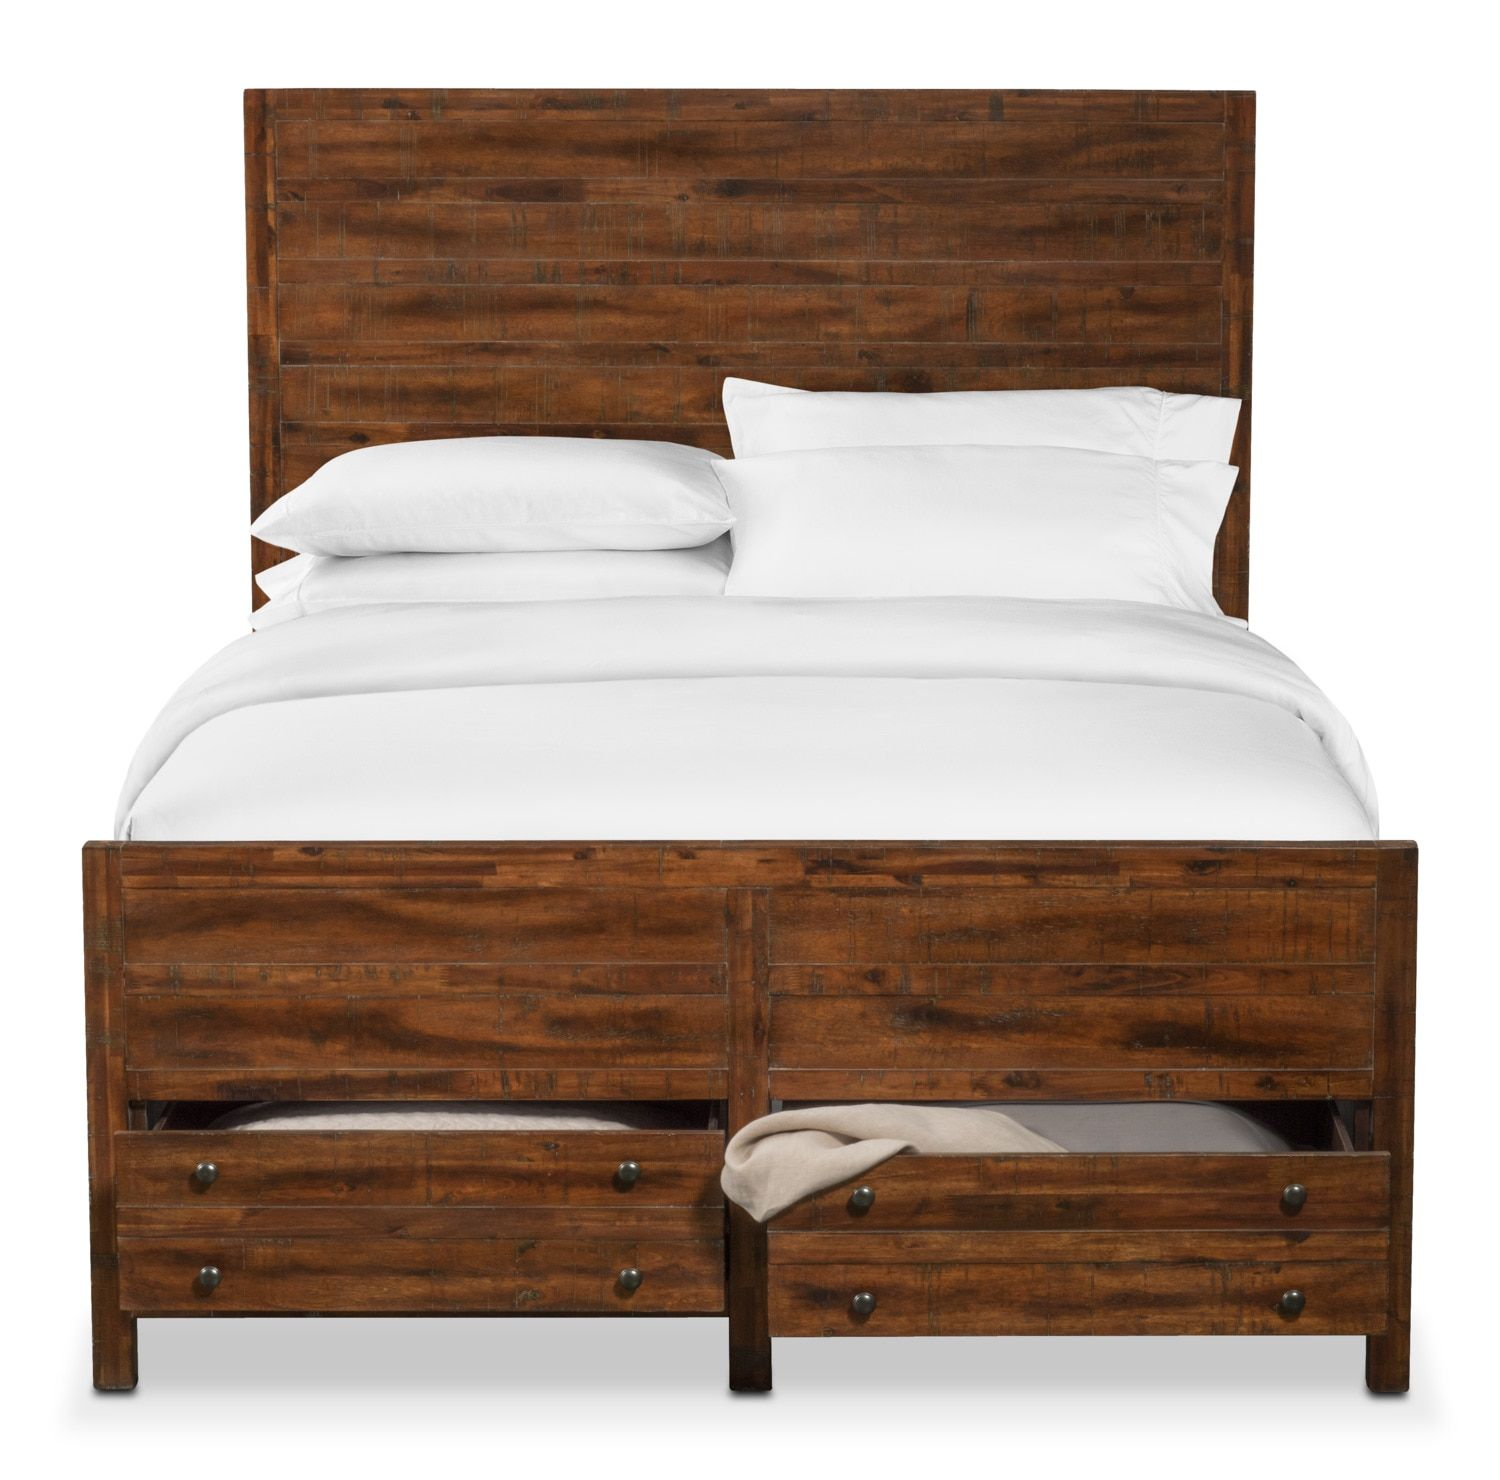 Urban Country. Get the vintage look of barn wood with the